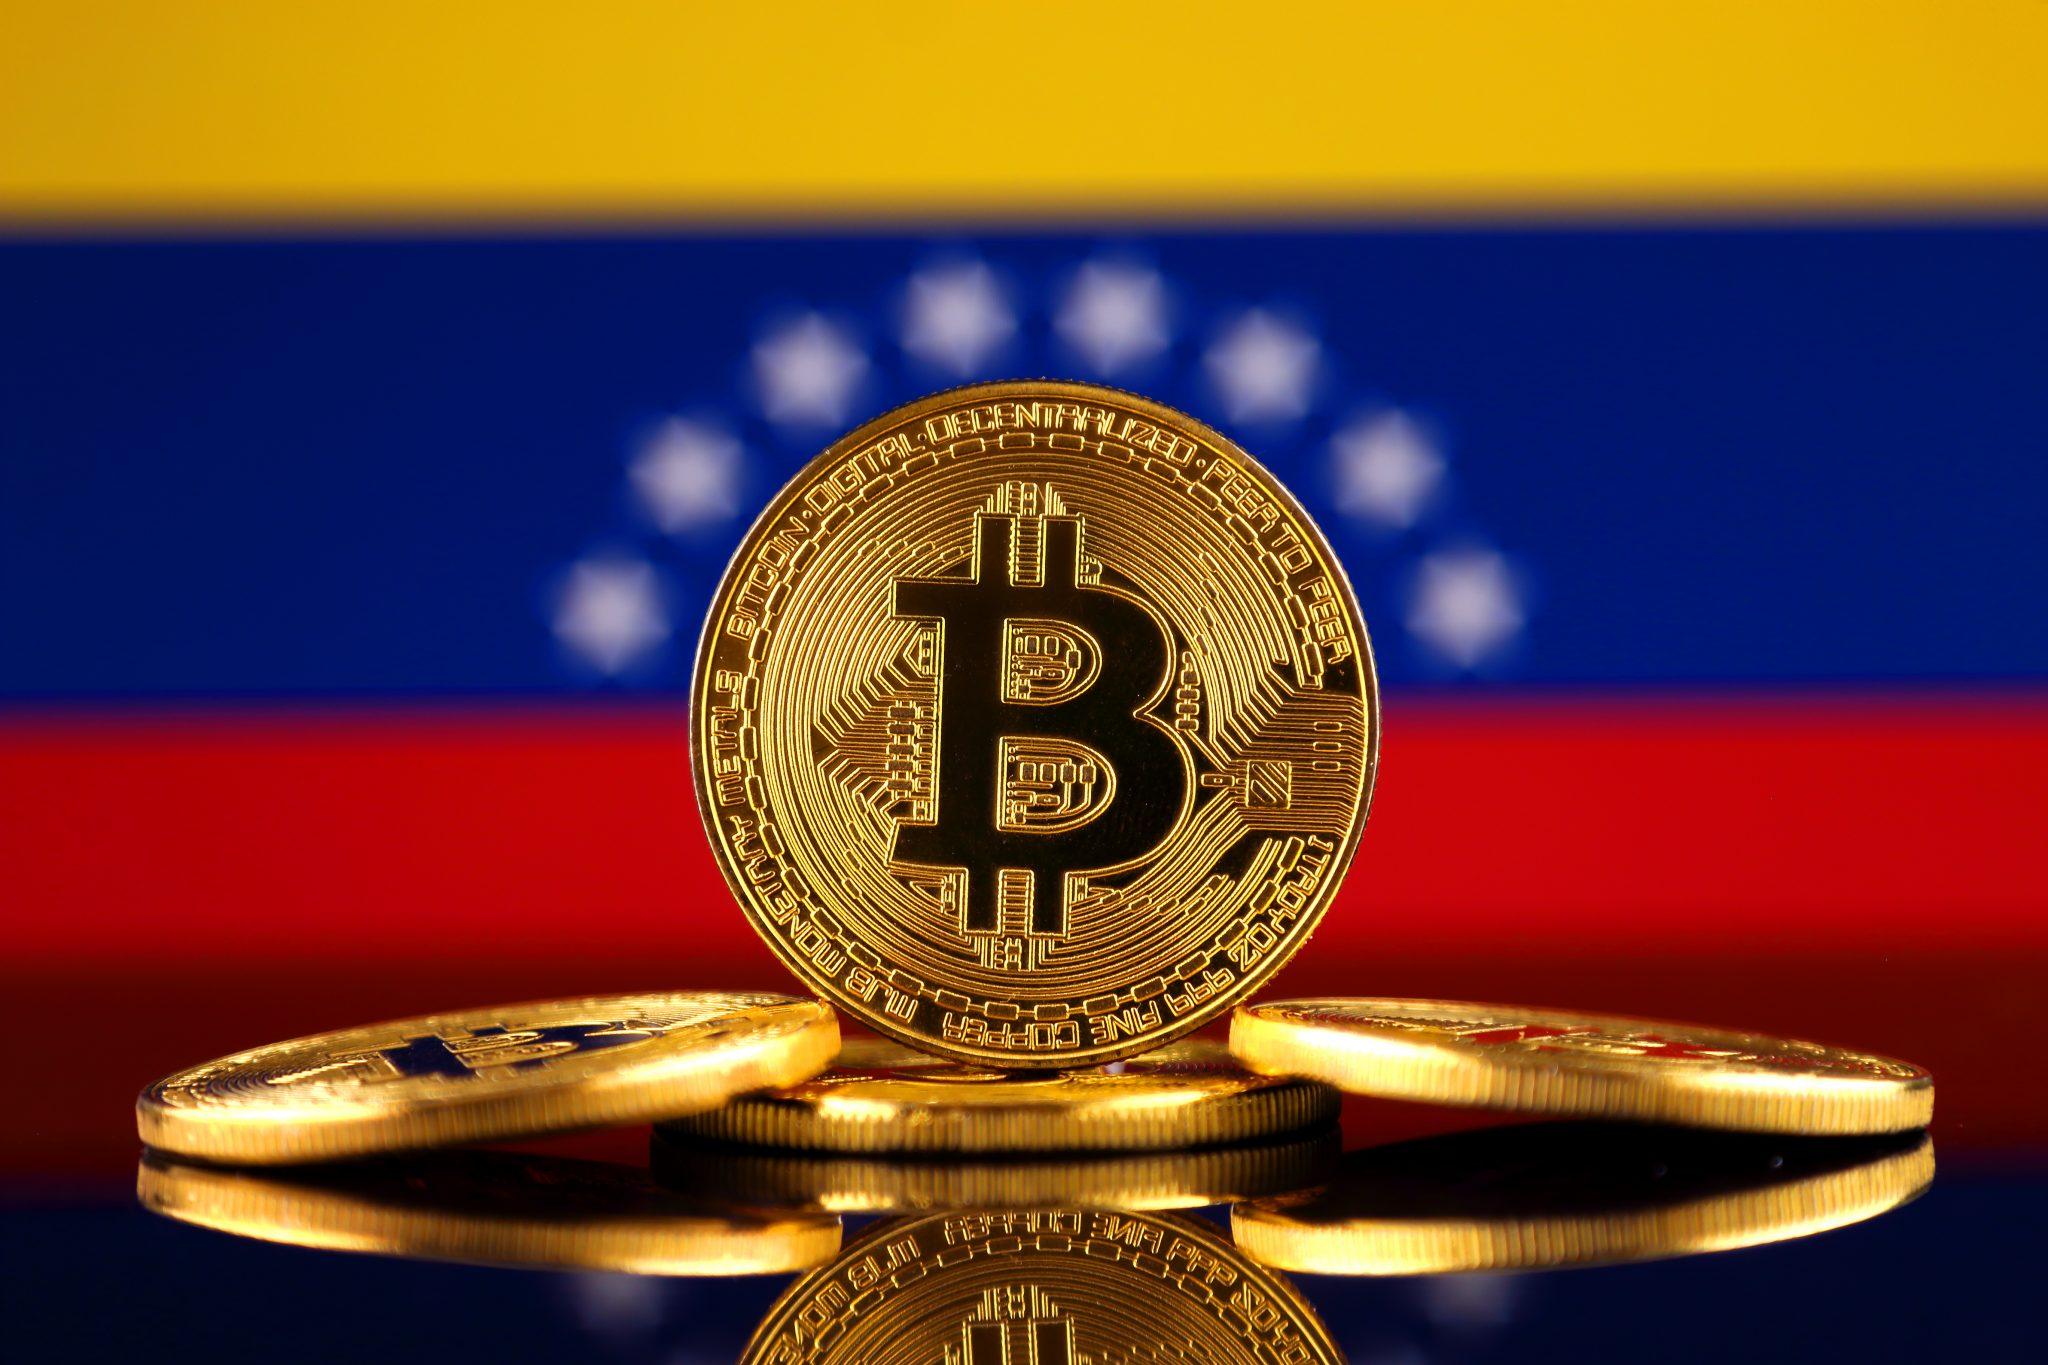 Physical version of Bitcoin (new virtual money) and Venezuela Flag. Conceptual image for investors in cryptocurrency and Blockchain Technology in Venezuela.